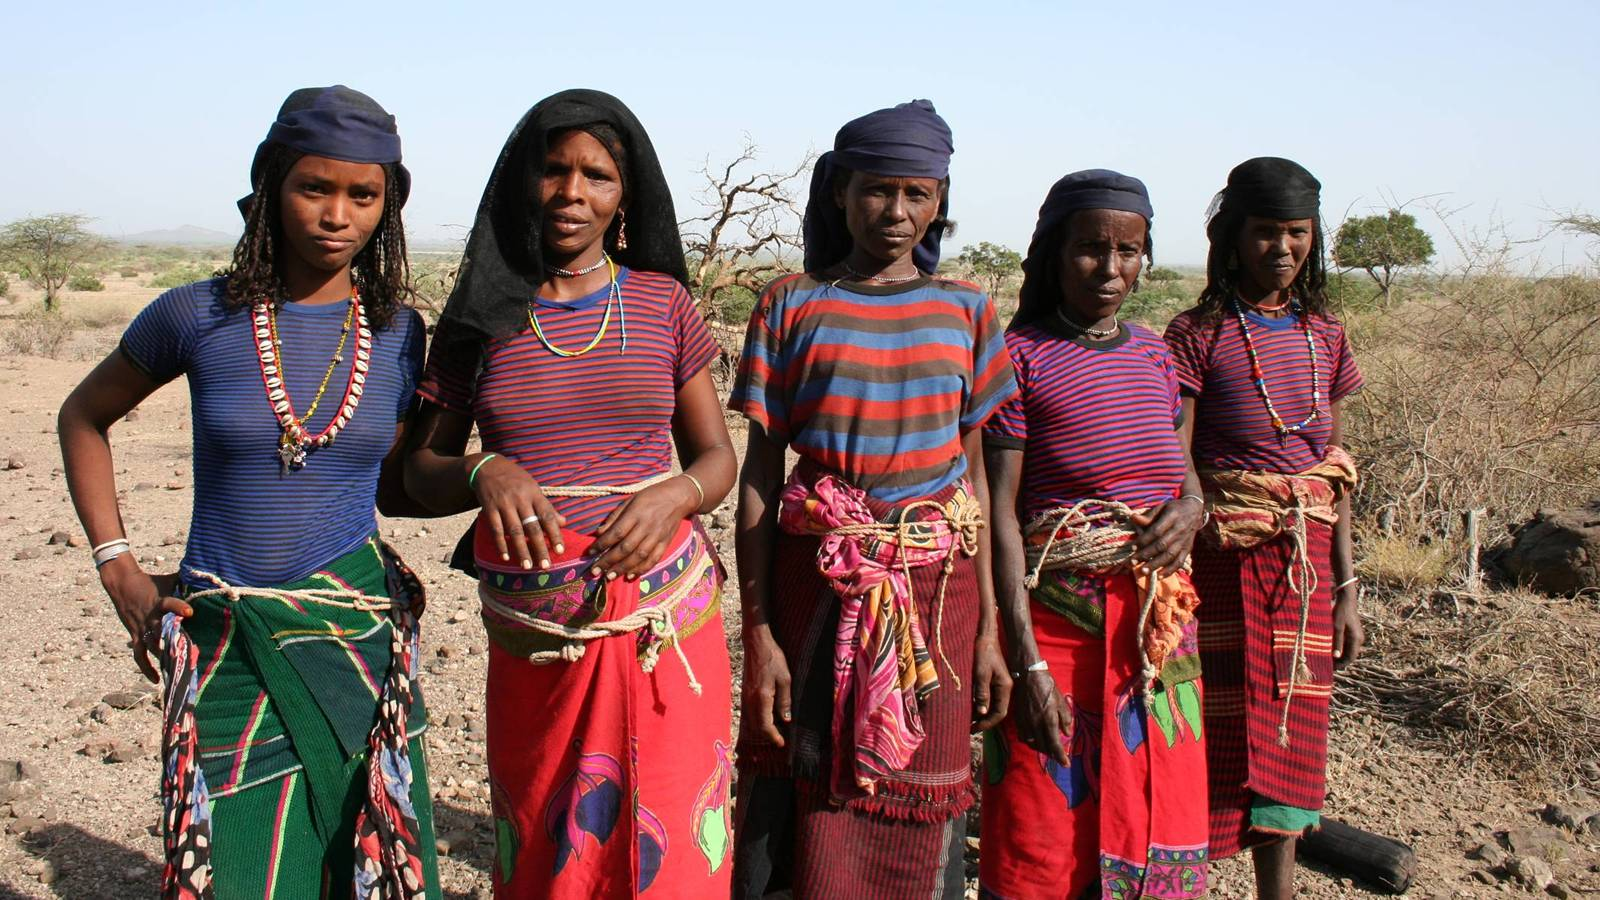 ethiopian culture By adene bekele ethiopian culture is very different from most of the countries in the world, especially the usa some of the differences are language, clothes and media.